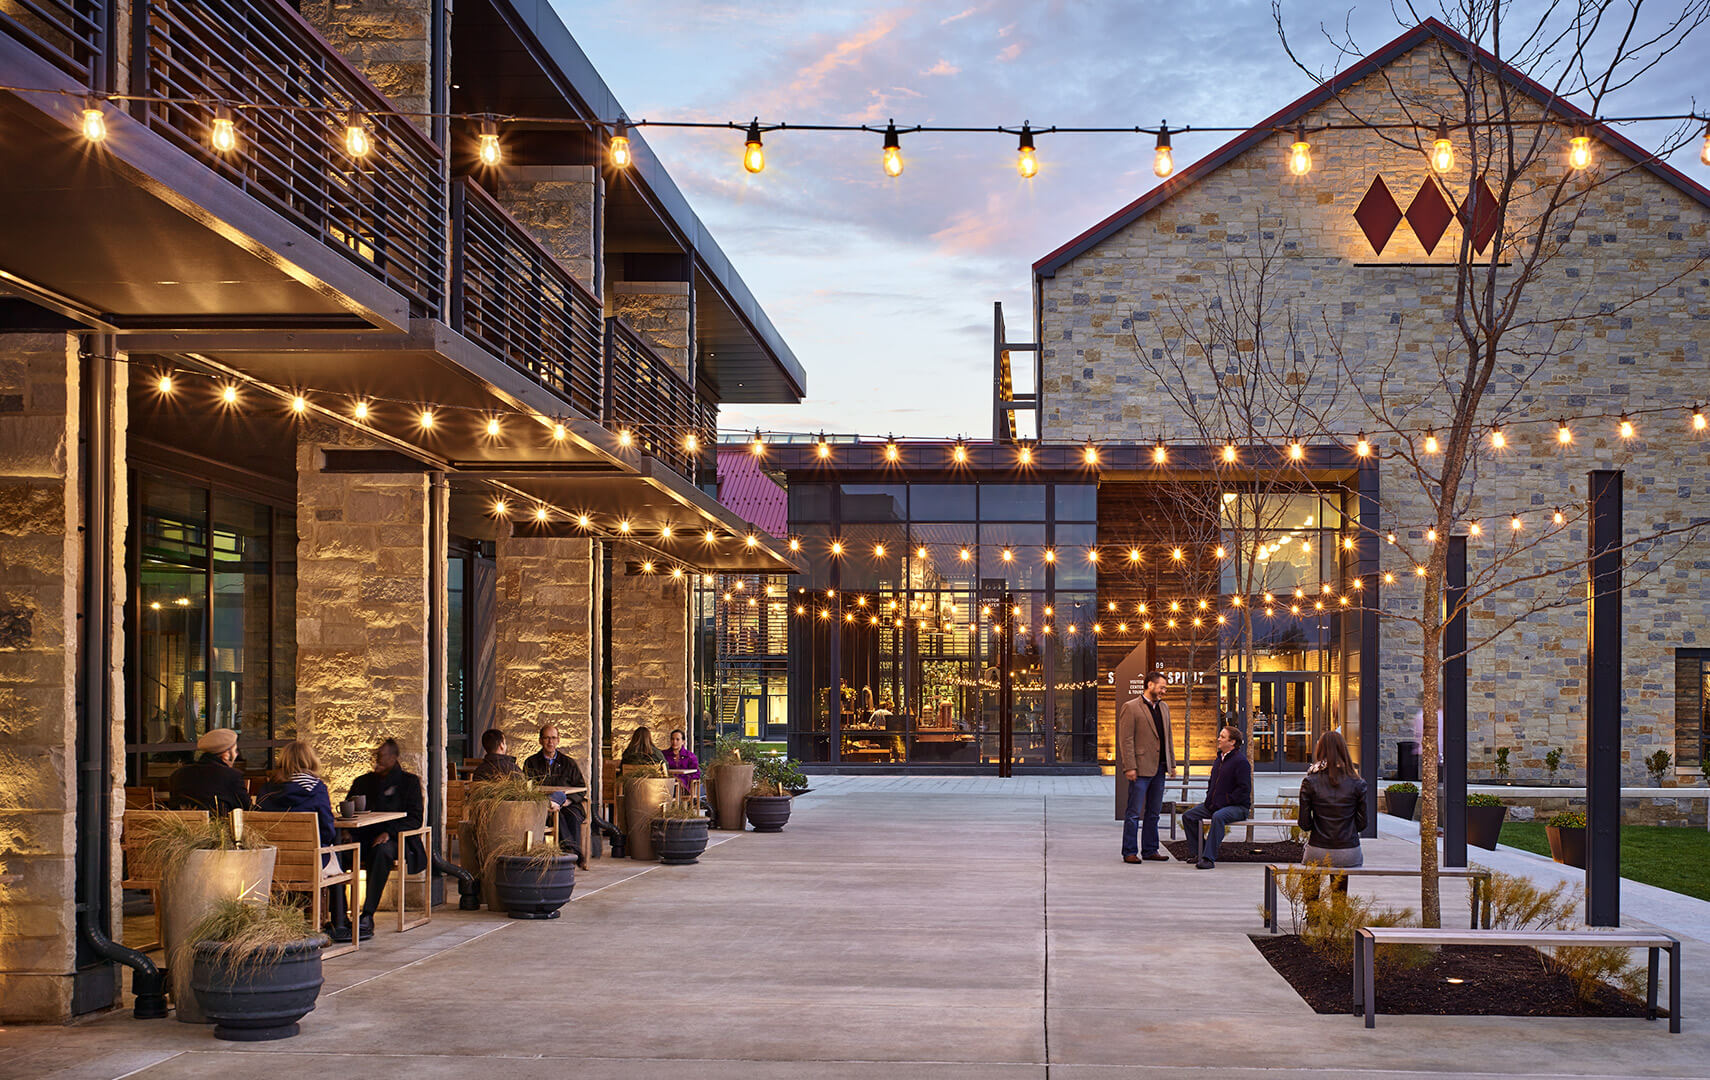 Courtyard of Sagamore Spirit Distillery in Baltimore, MD